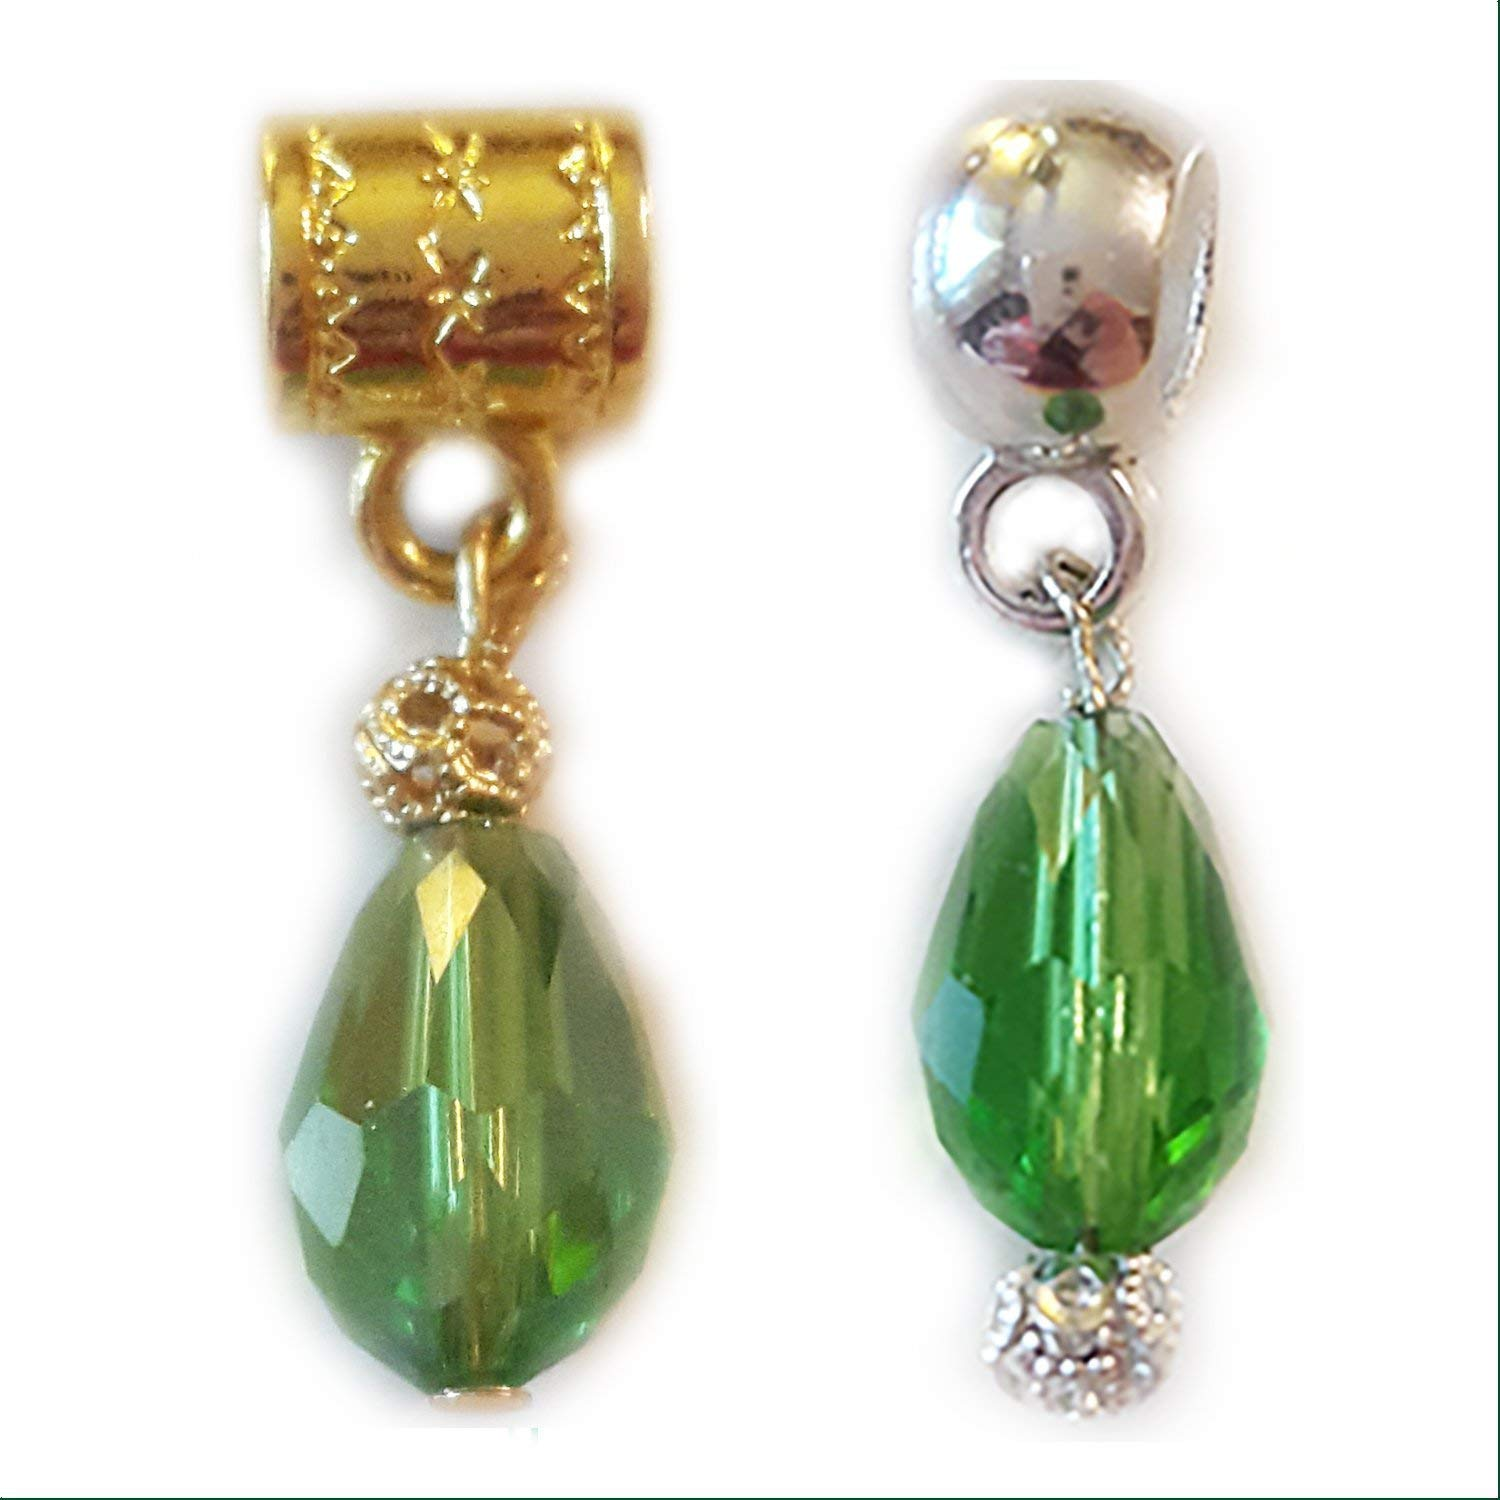 """""""Green Crystal glass"""" charm. Gold-Plated or Silver-Plated Hanging charm by Mossy Cabin for large hole snake chain charm bracelets, Neck Chain or key chain in Christmas green or as August birthstone"""